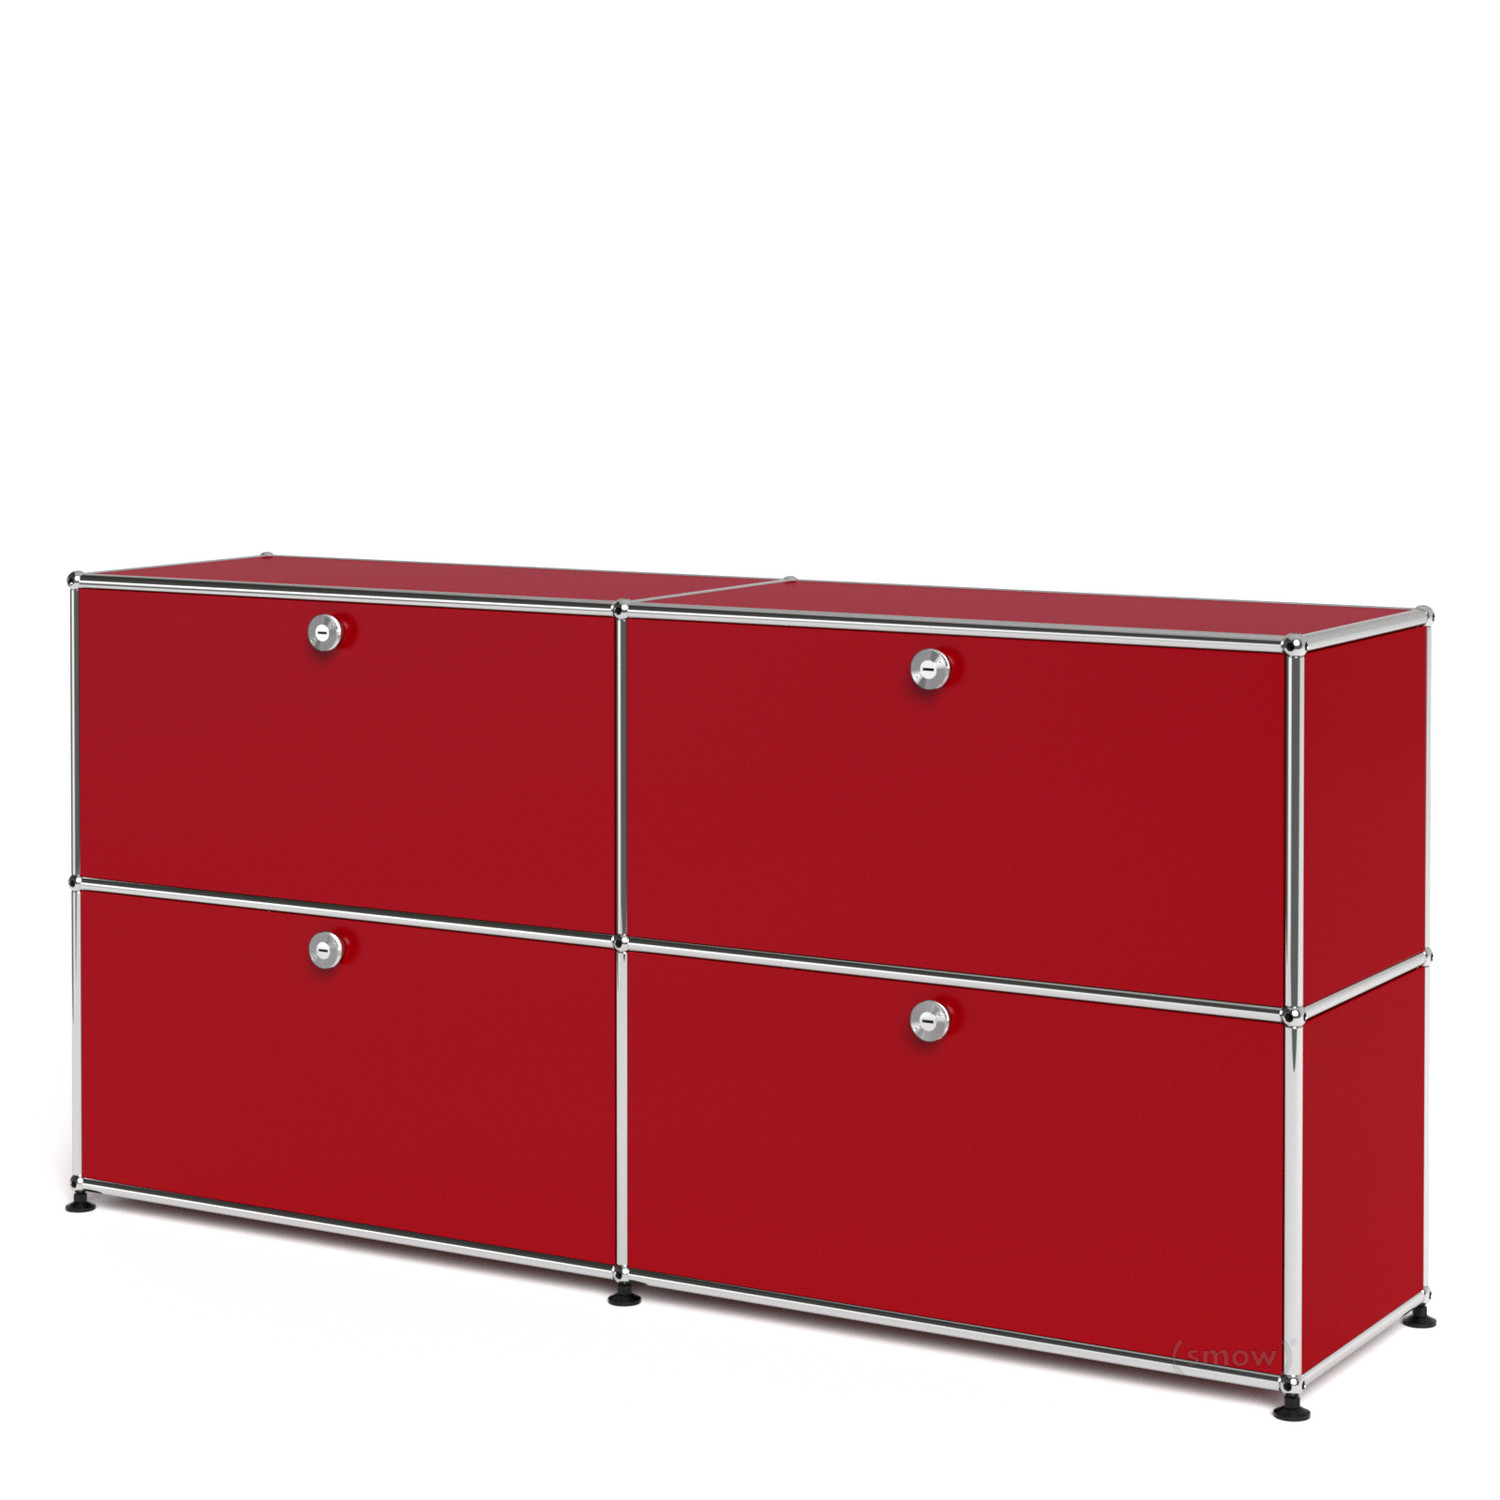 Usm Haller Sideboard L Customisable Usm Ruby Red With 2 Drop Down Doors With 2 Drop Down Doors By Fritz Haller Paul Schärer Designer Furniture By Smow Com